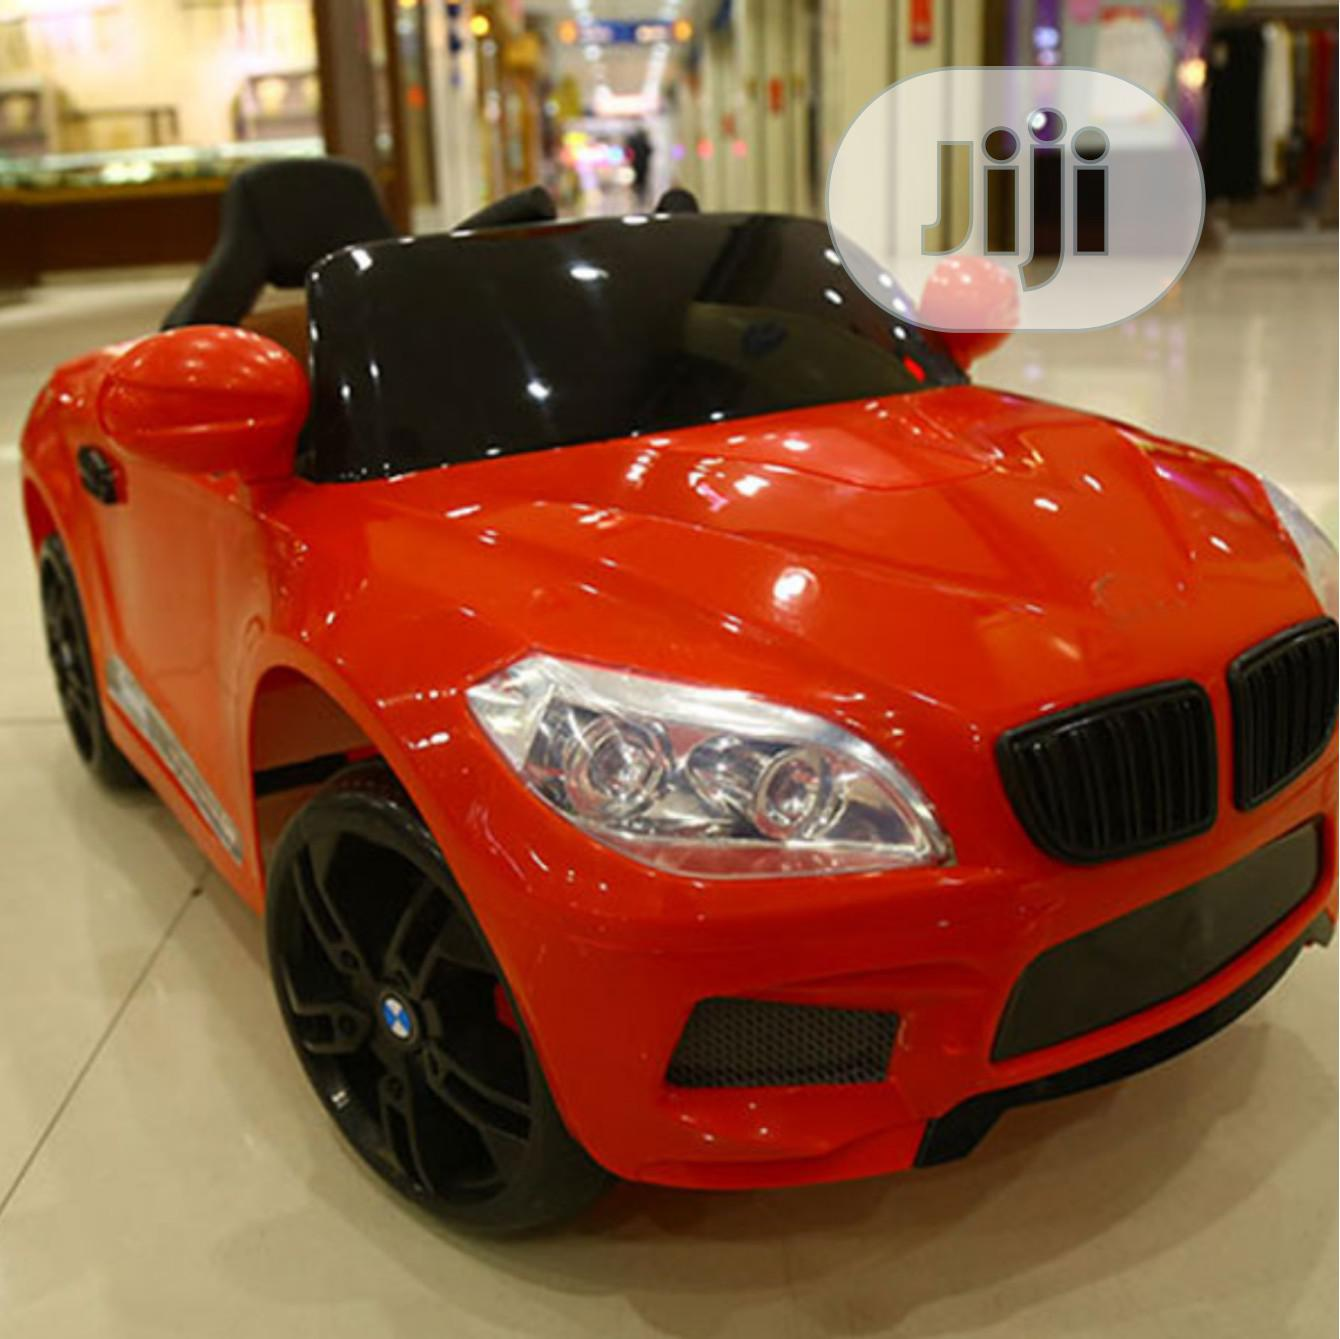 Rechargeable Ride On BMW Car For Kids | Toys for sale in Ikorodu, Lagos State, Nigeria